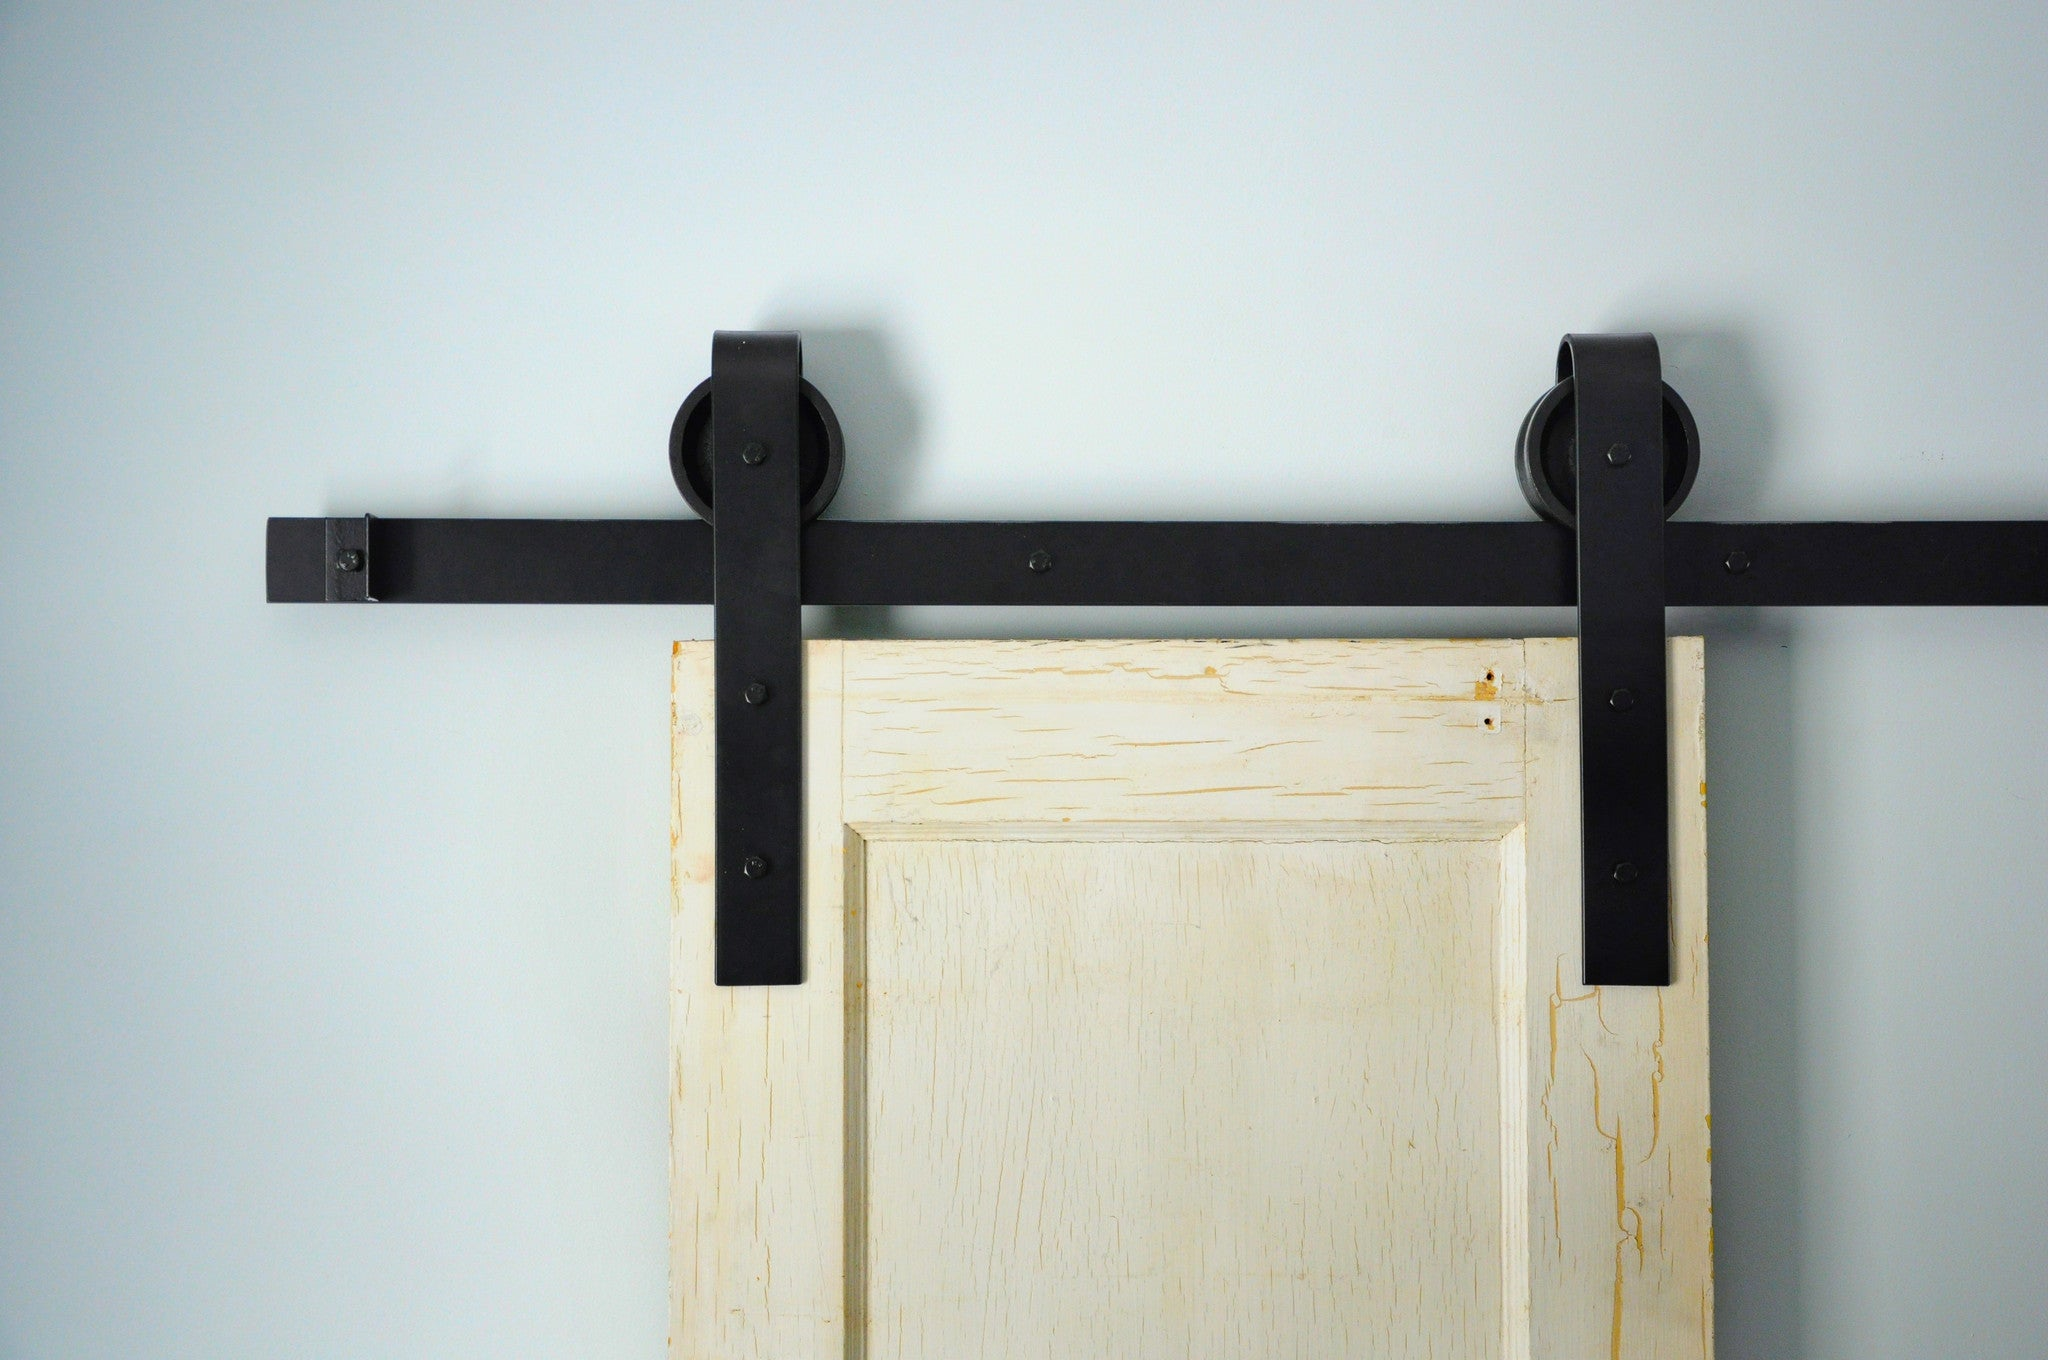 Sliding Double Barn Door Hardware Kit